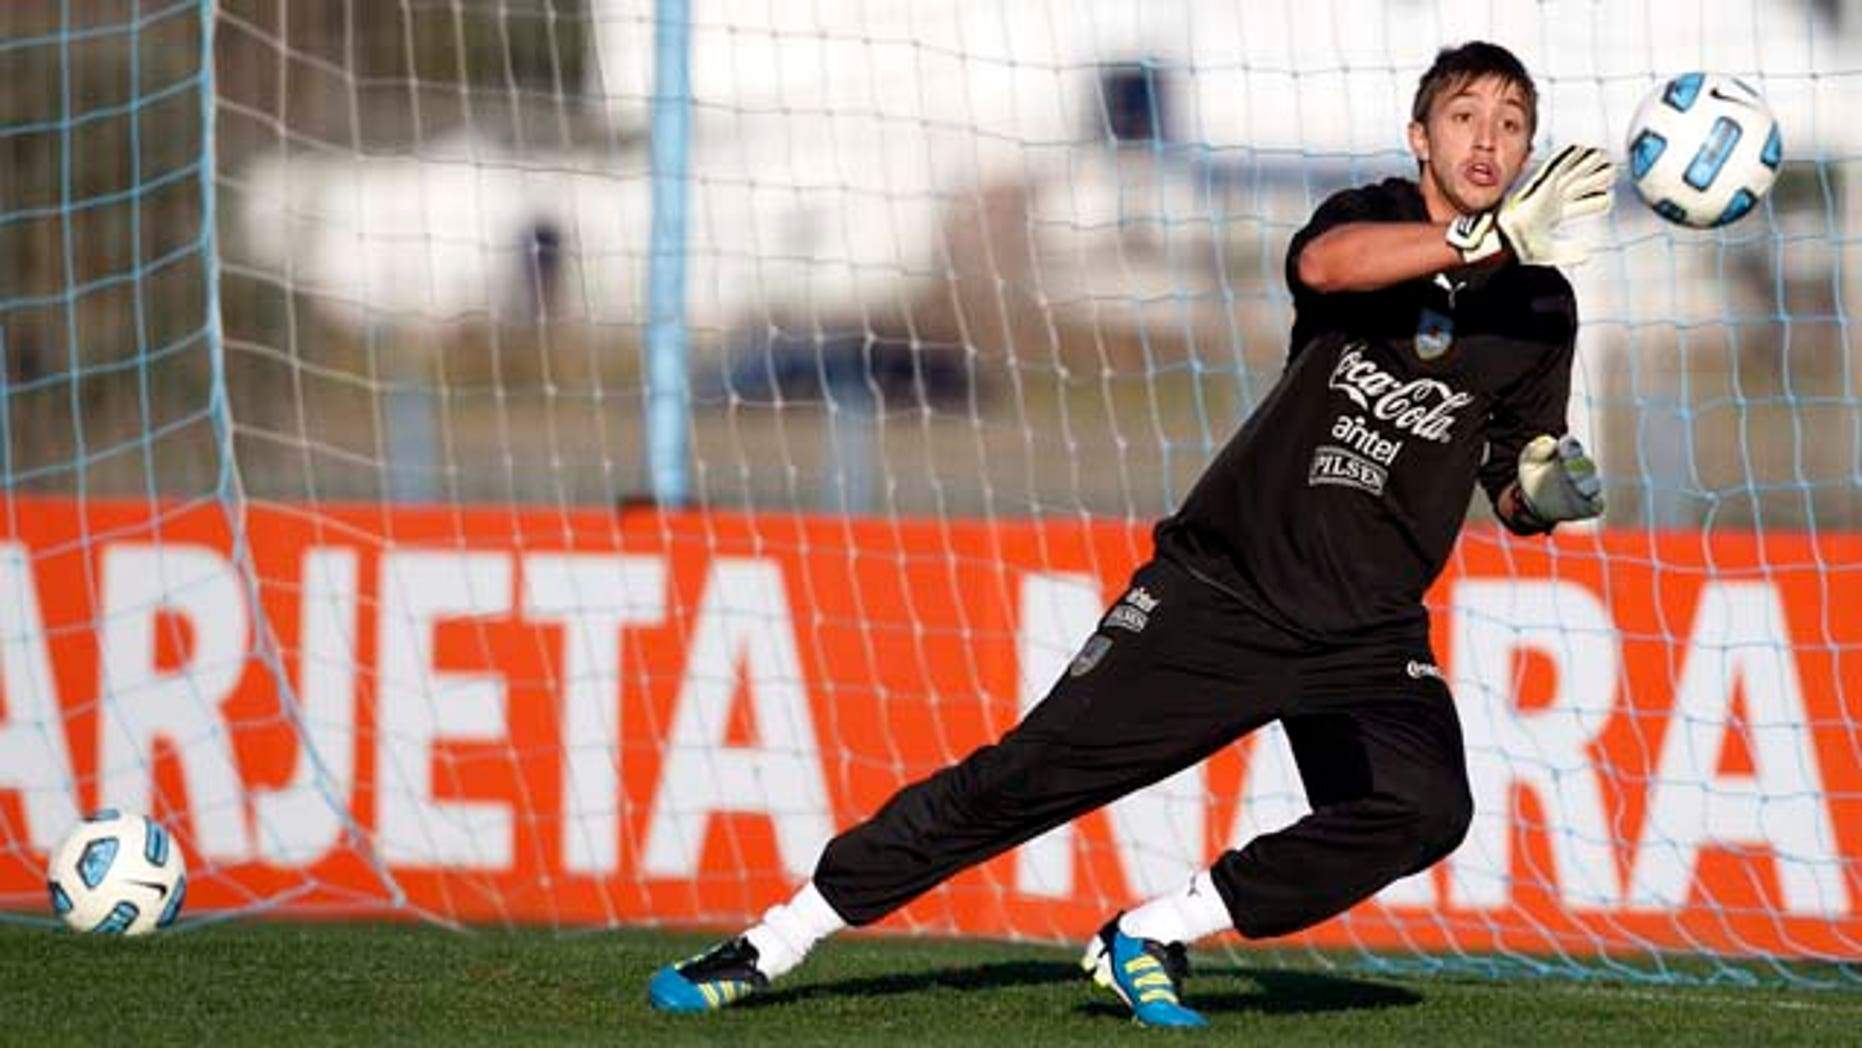 Uruguay's goalkeeper Fernando Muslera attends a training session in Buenos Aires, Argentina, Thursday, July 21, 2011. Uruguay will face Paraguay on July 24 for the final Copa America soccer match. (AP Photo/Natacha Pisarenko)